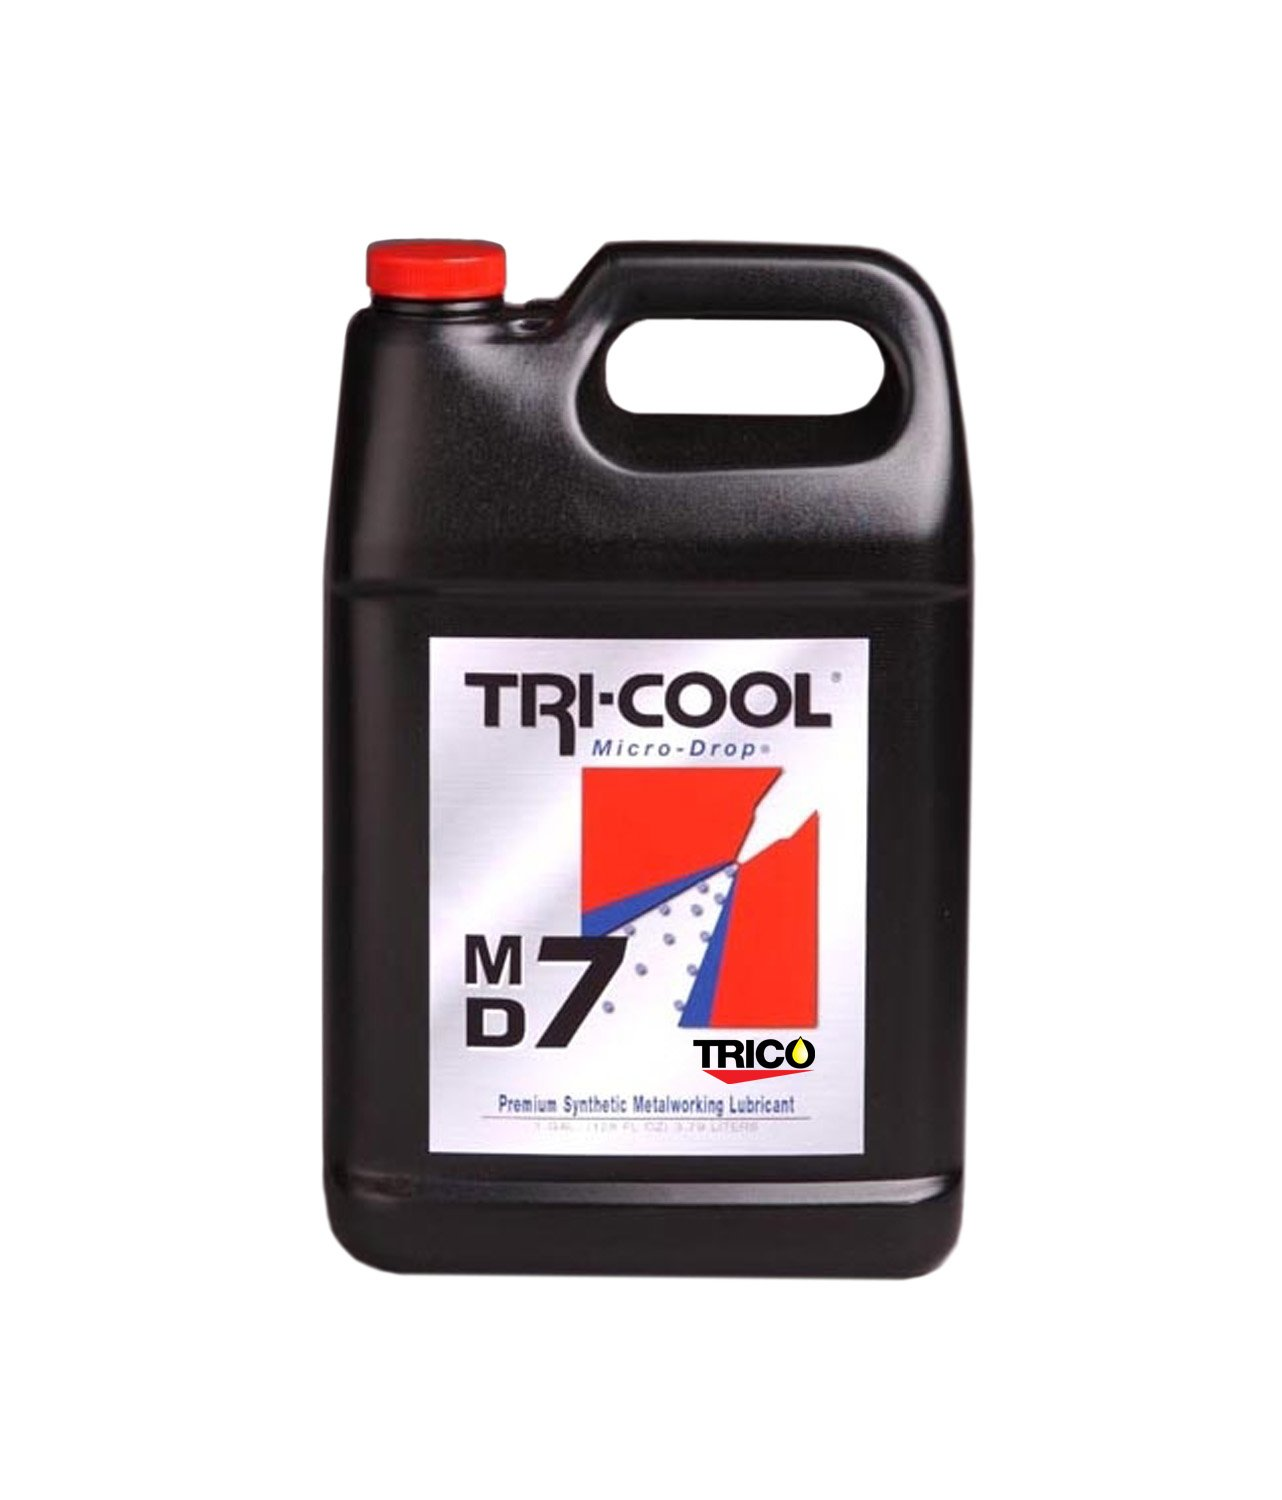 Trico MD-7 Micro-Drop Synthetic Lubricant, 1 Gallon Can, Pack of 1